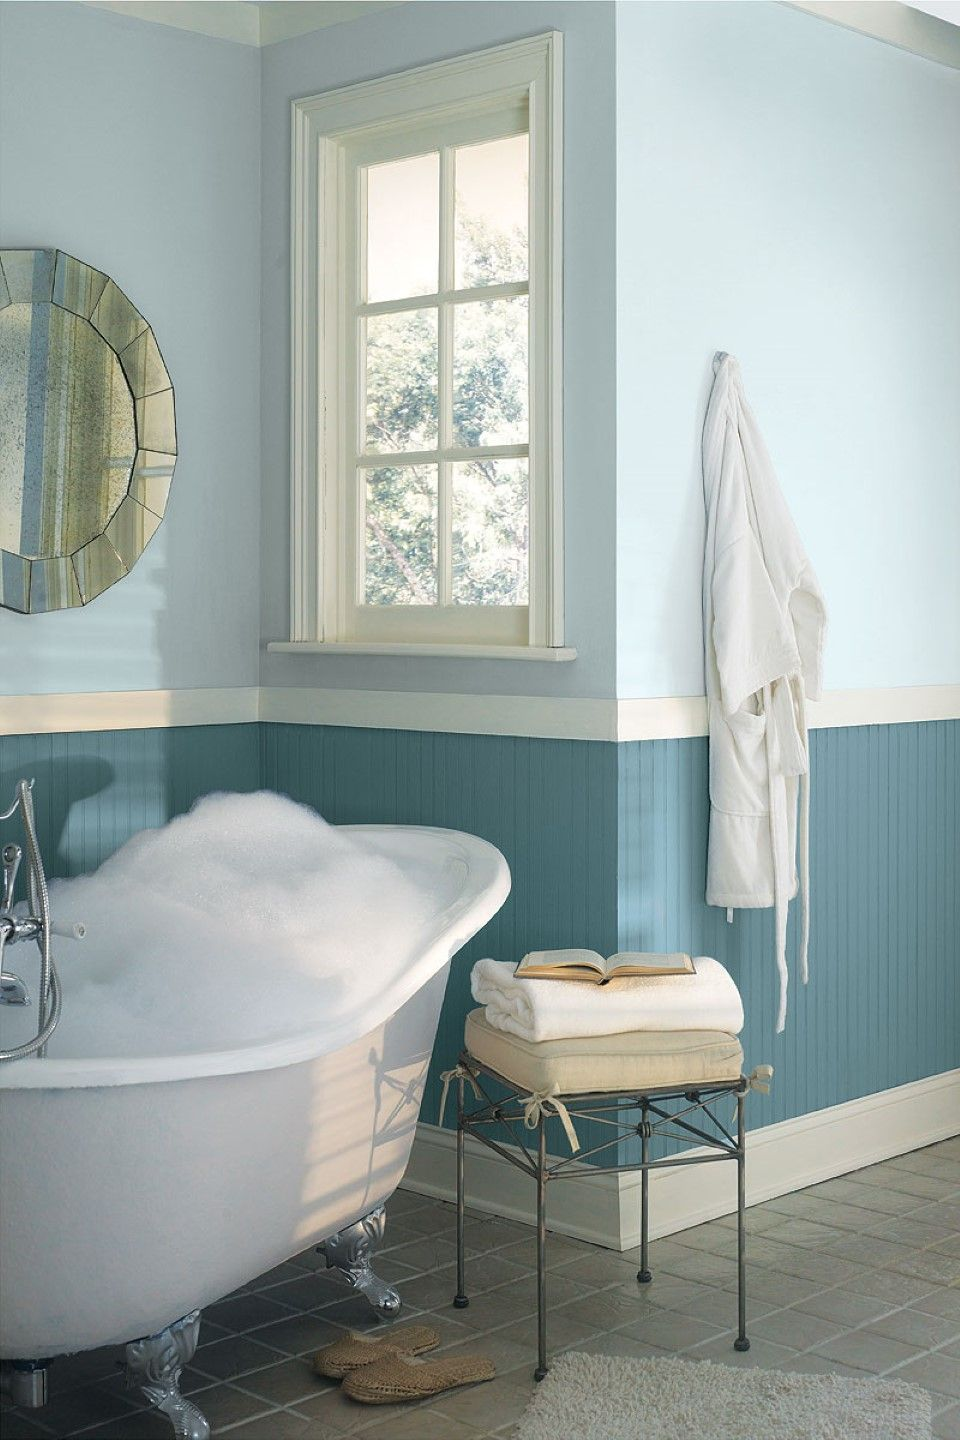 Cool Two Tone Blue Bathroom Colors Idea Combined With White Freestanding Tub Near Wire Table Best Bathroom Paint Colors Small Bathroom Colors Painting Bathroom